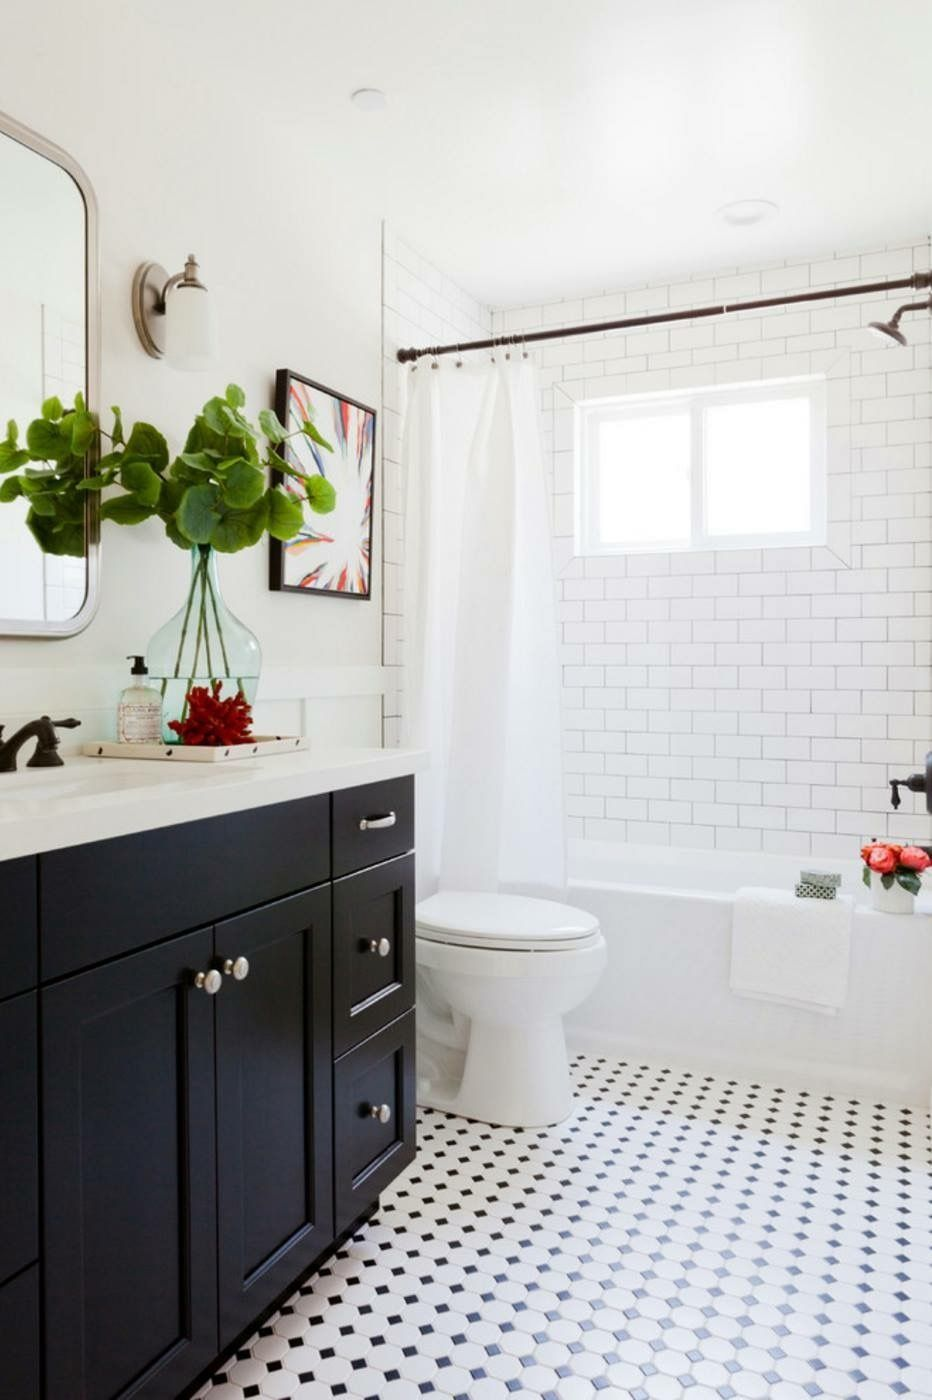 35 Awesome Bathroom Design Ideas | Black tuxedos, White subway tiles ...